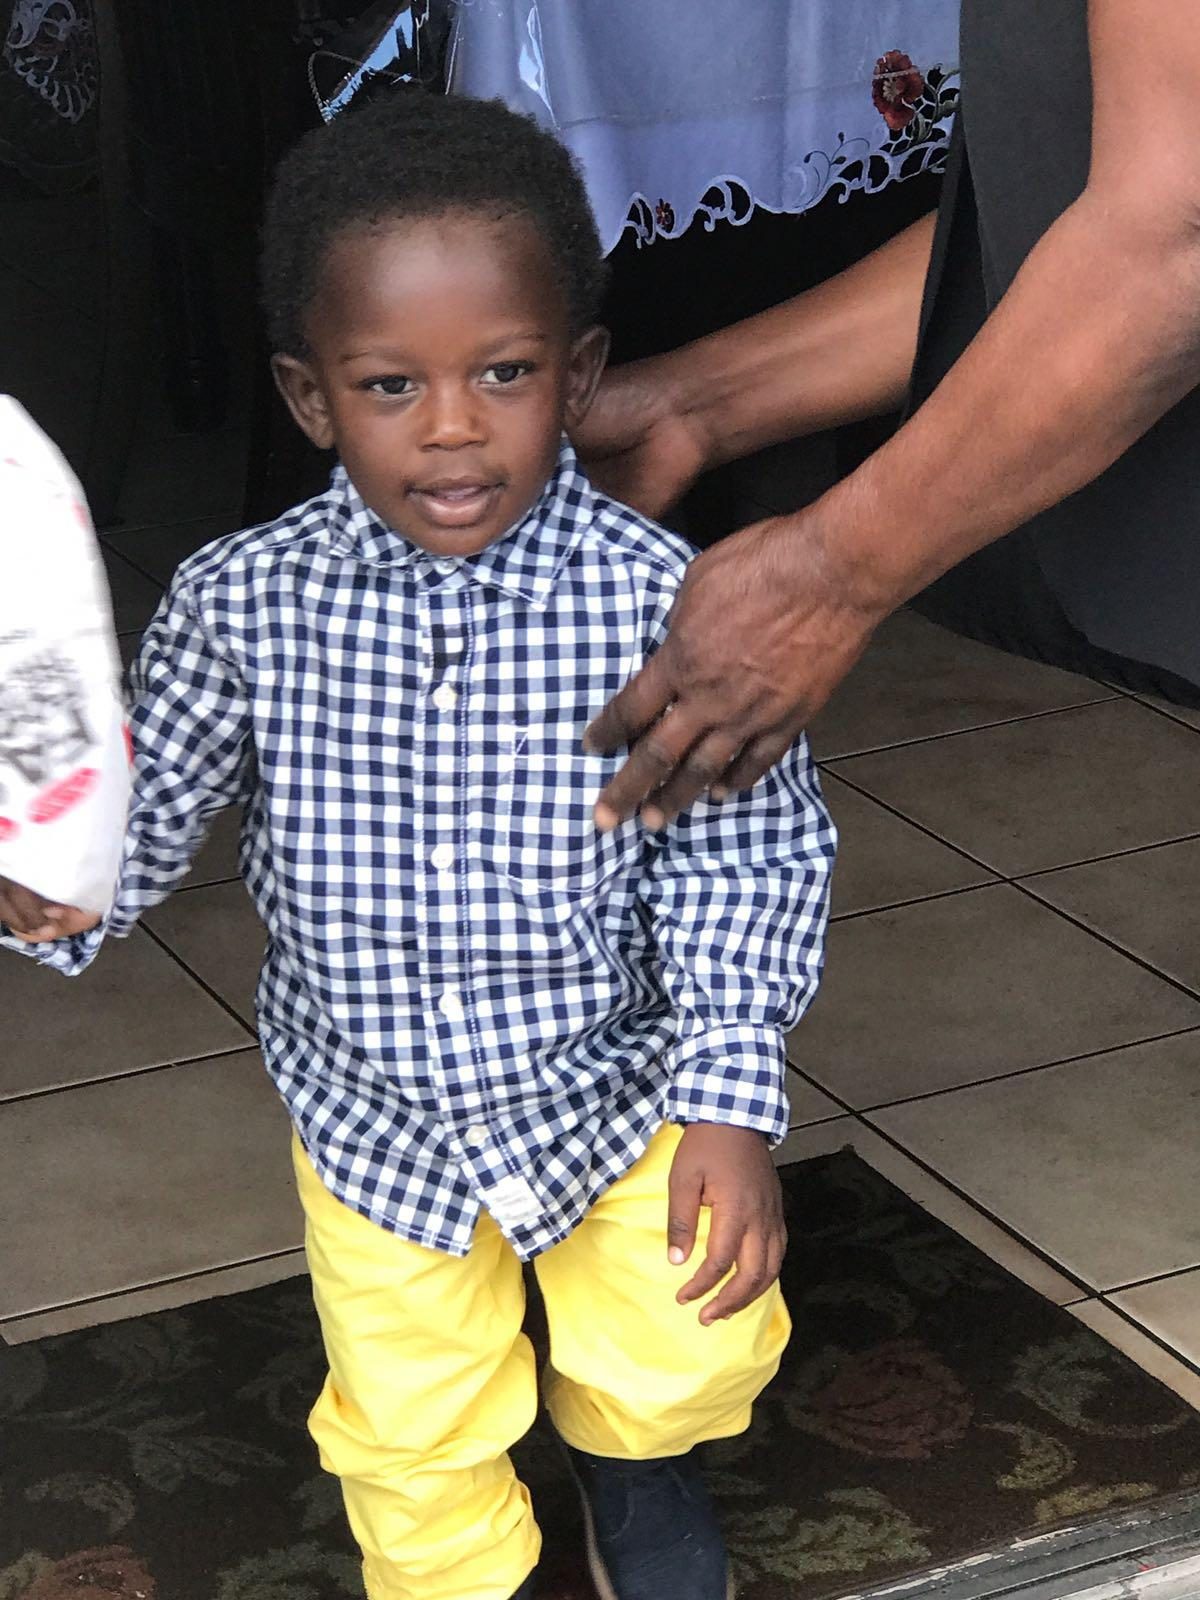 A 1-year-old boy who was found inside of a hot car parked outside a home in Delray Beach was pronounced dead Saturday afternoon. (Photo courtesy: Sauveur family)